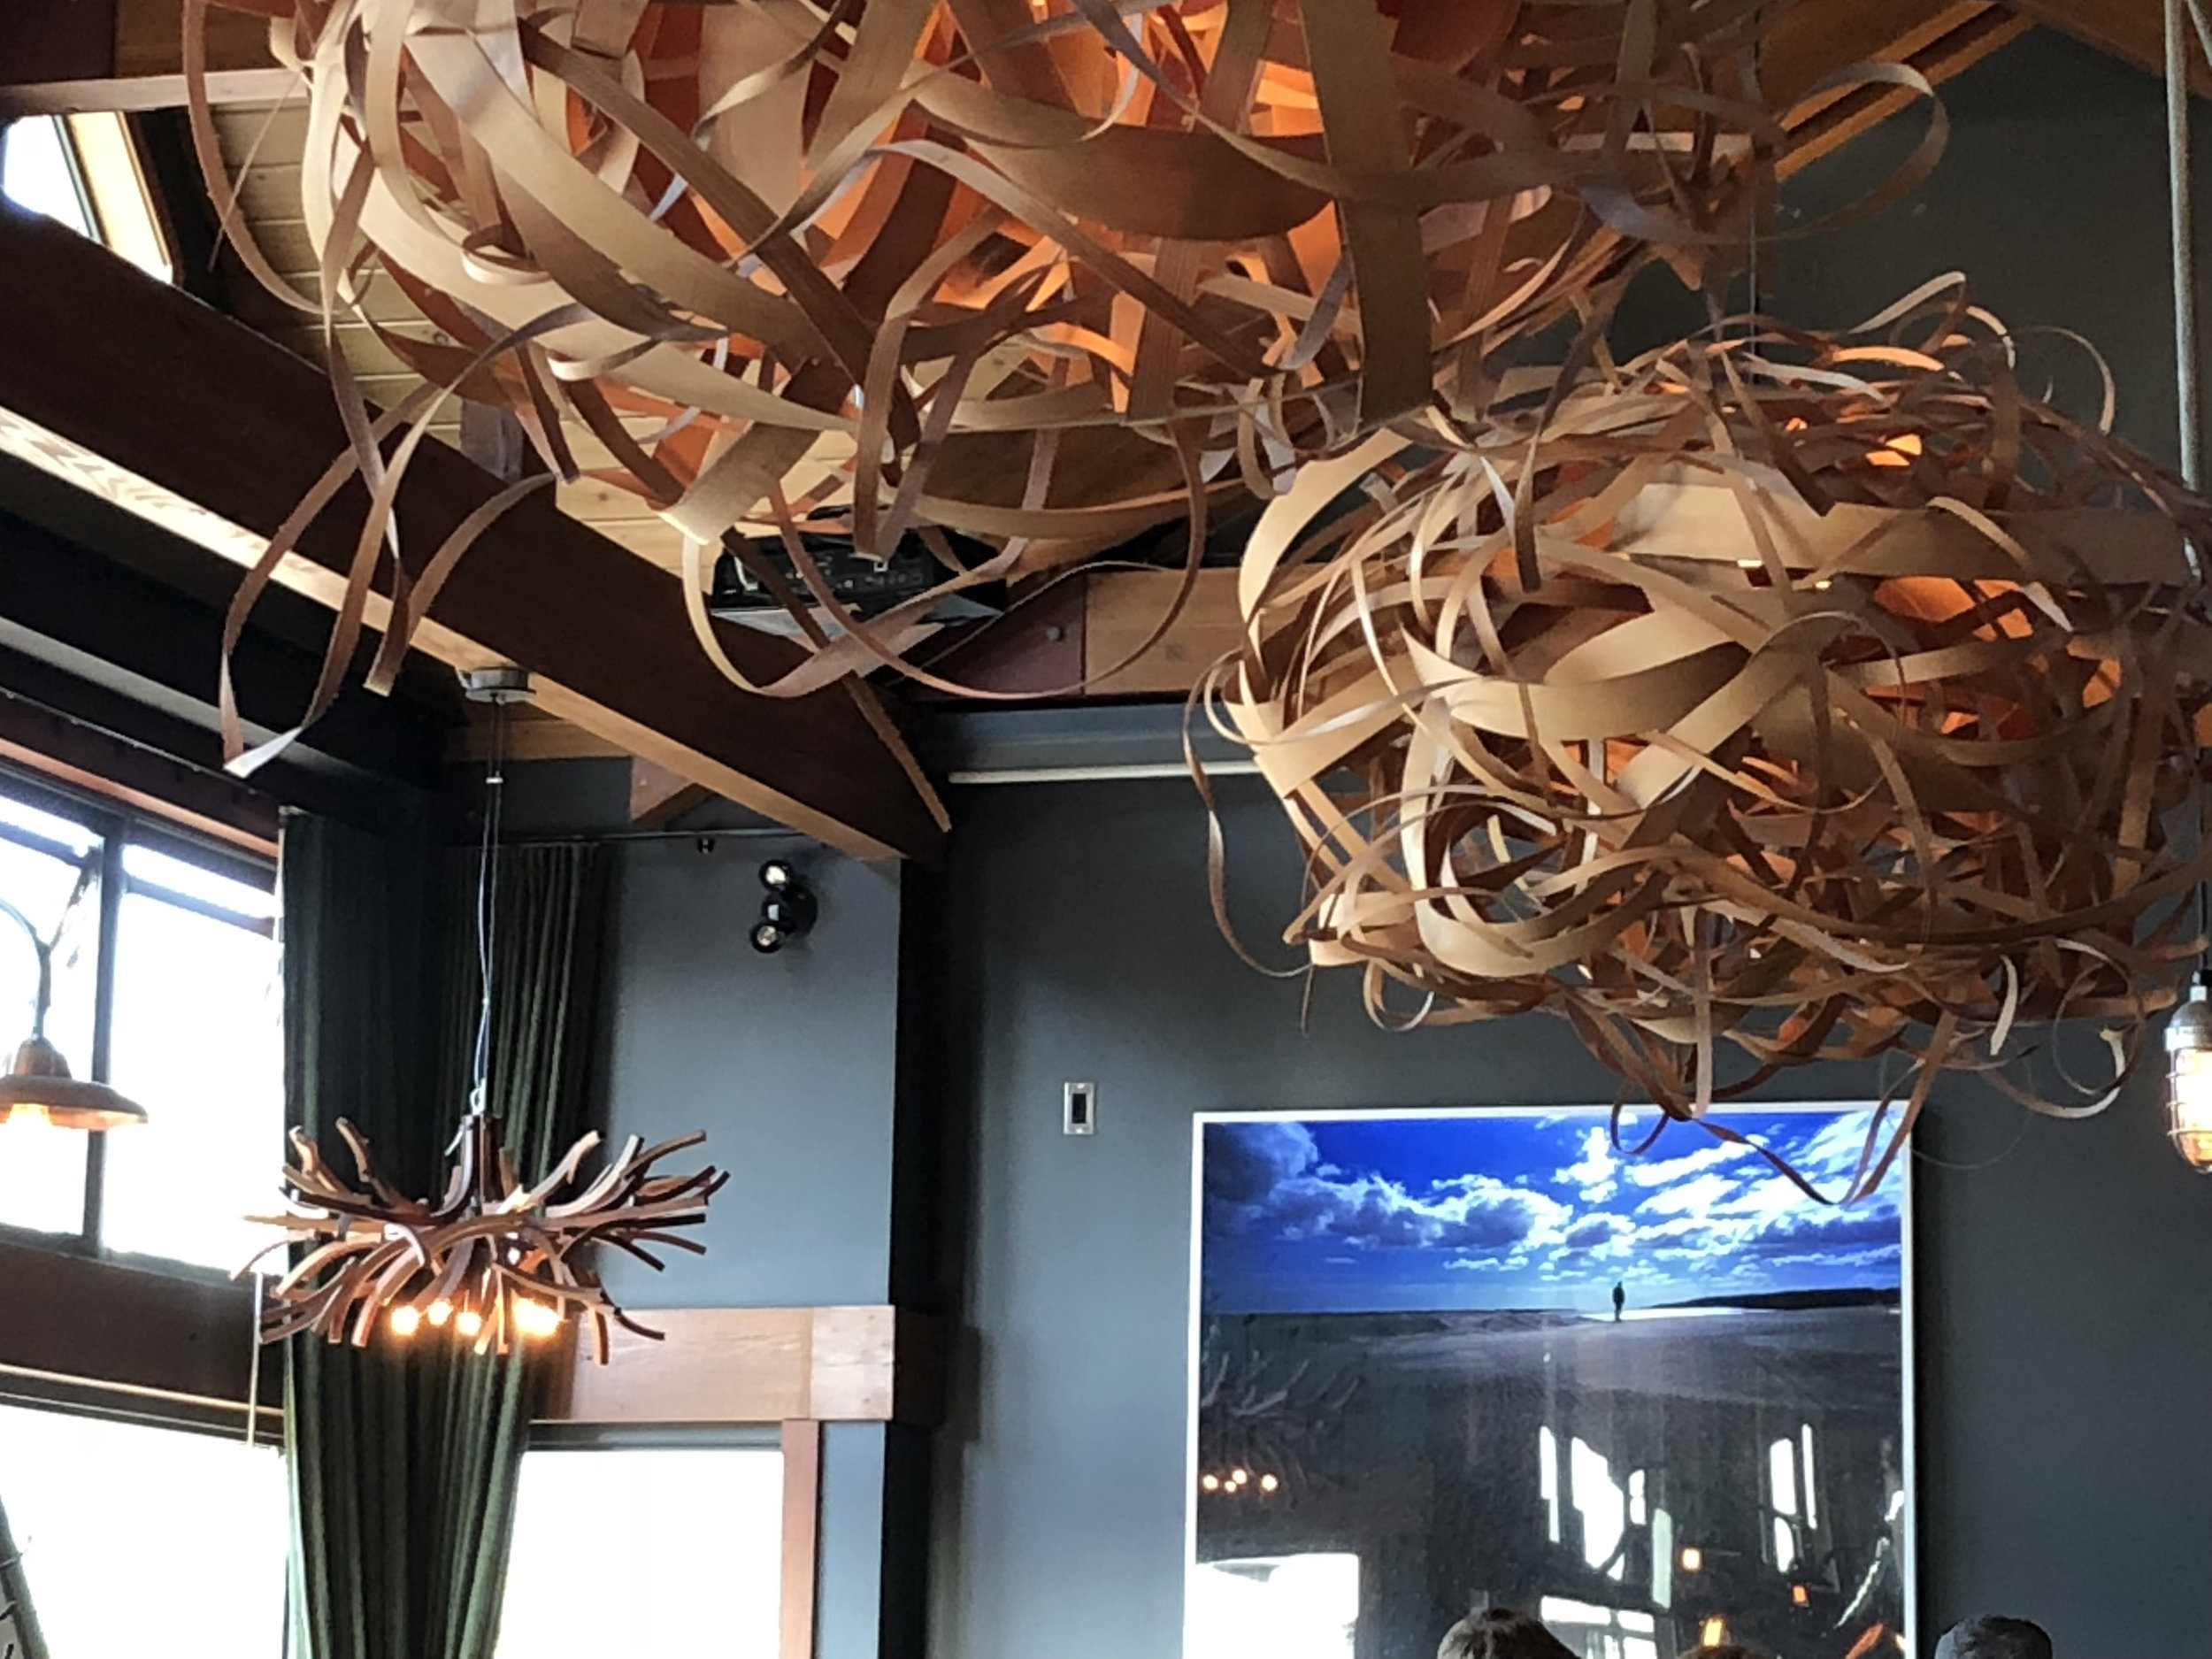 The upstairs dining room at Wolf In The Fog is warm and inviting and features whimsical wood sculptures. There is also a covered, outside patio. If on the rotating menu, try the cheese pierogis, house-made pasta and Salt Spring Island mussels.